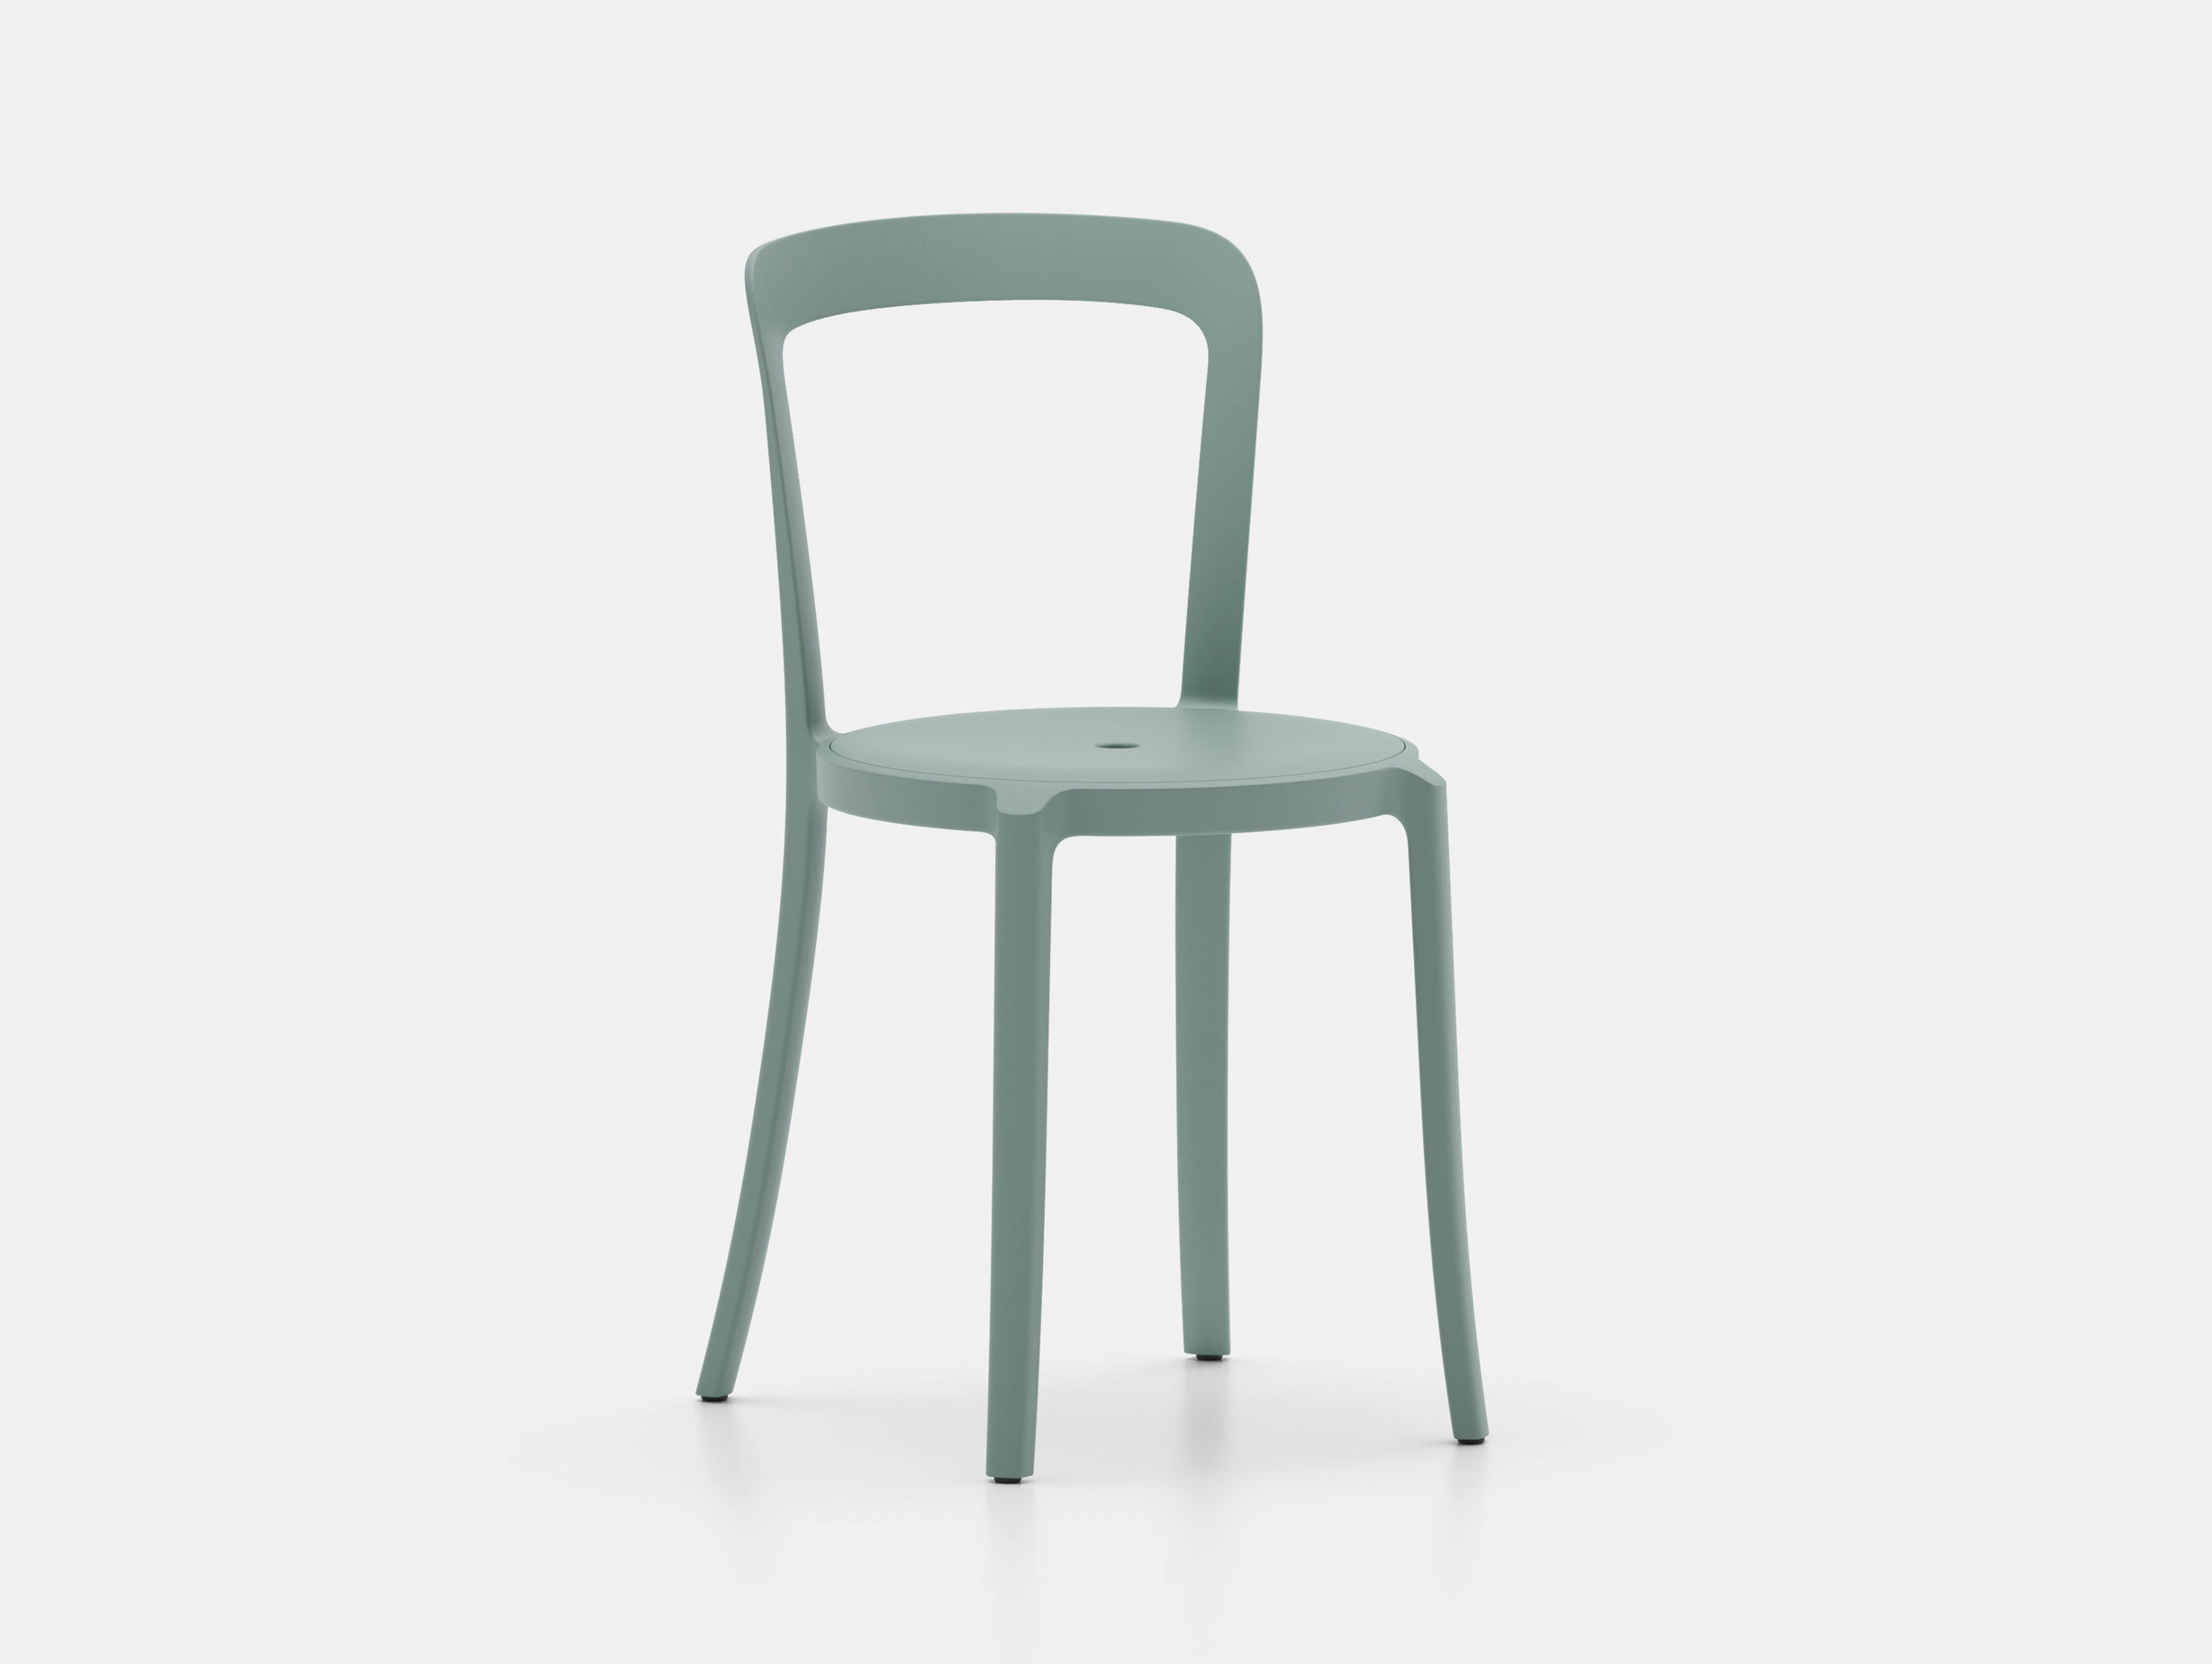 Emeco On and On Chair green blue Edward Barber Jay Osgerby